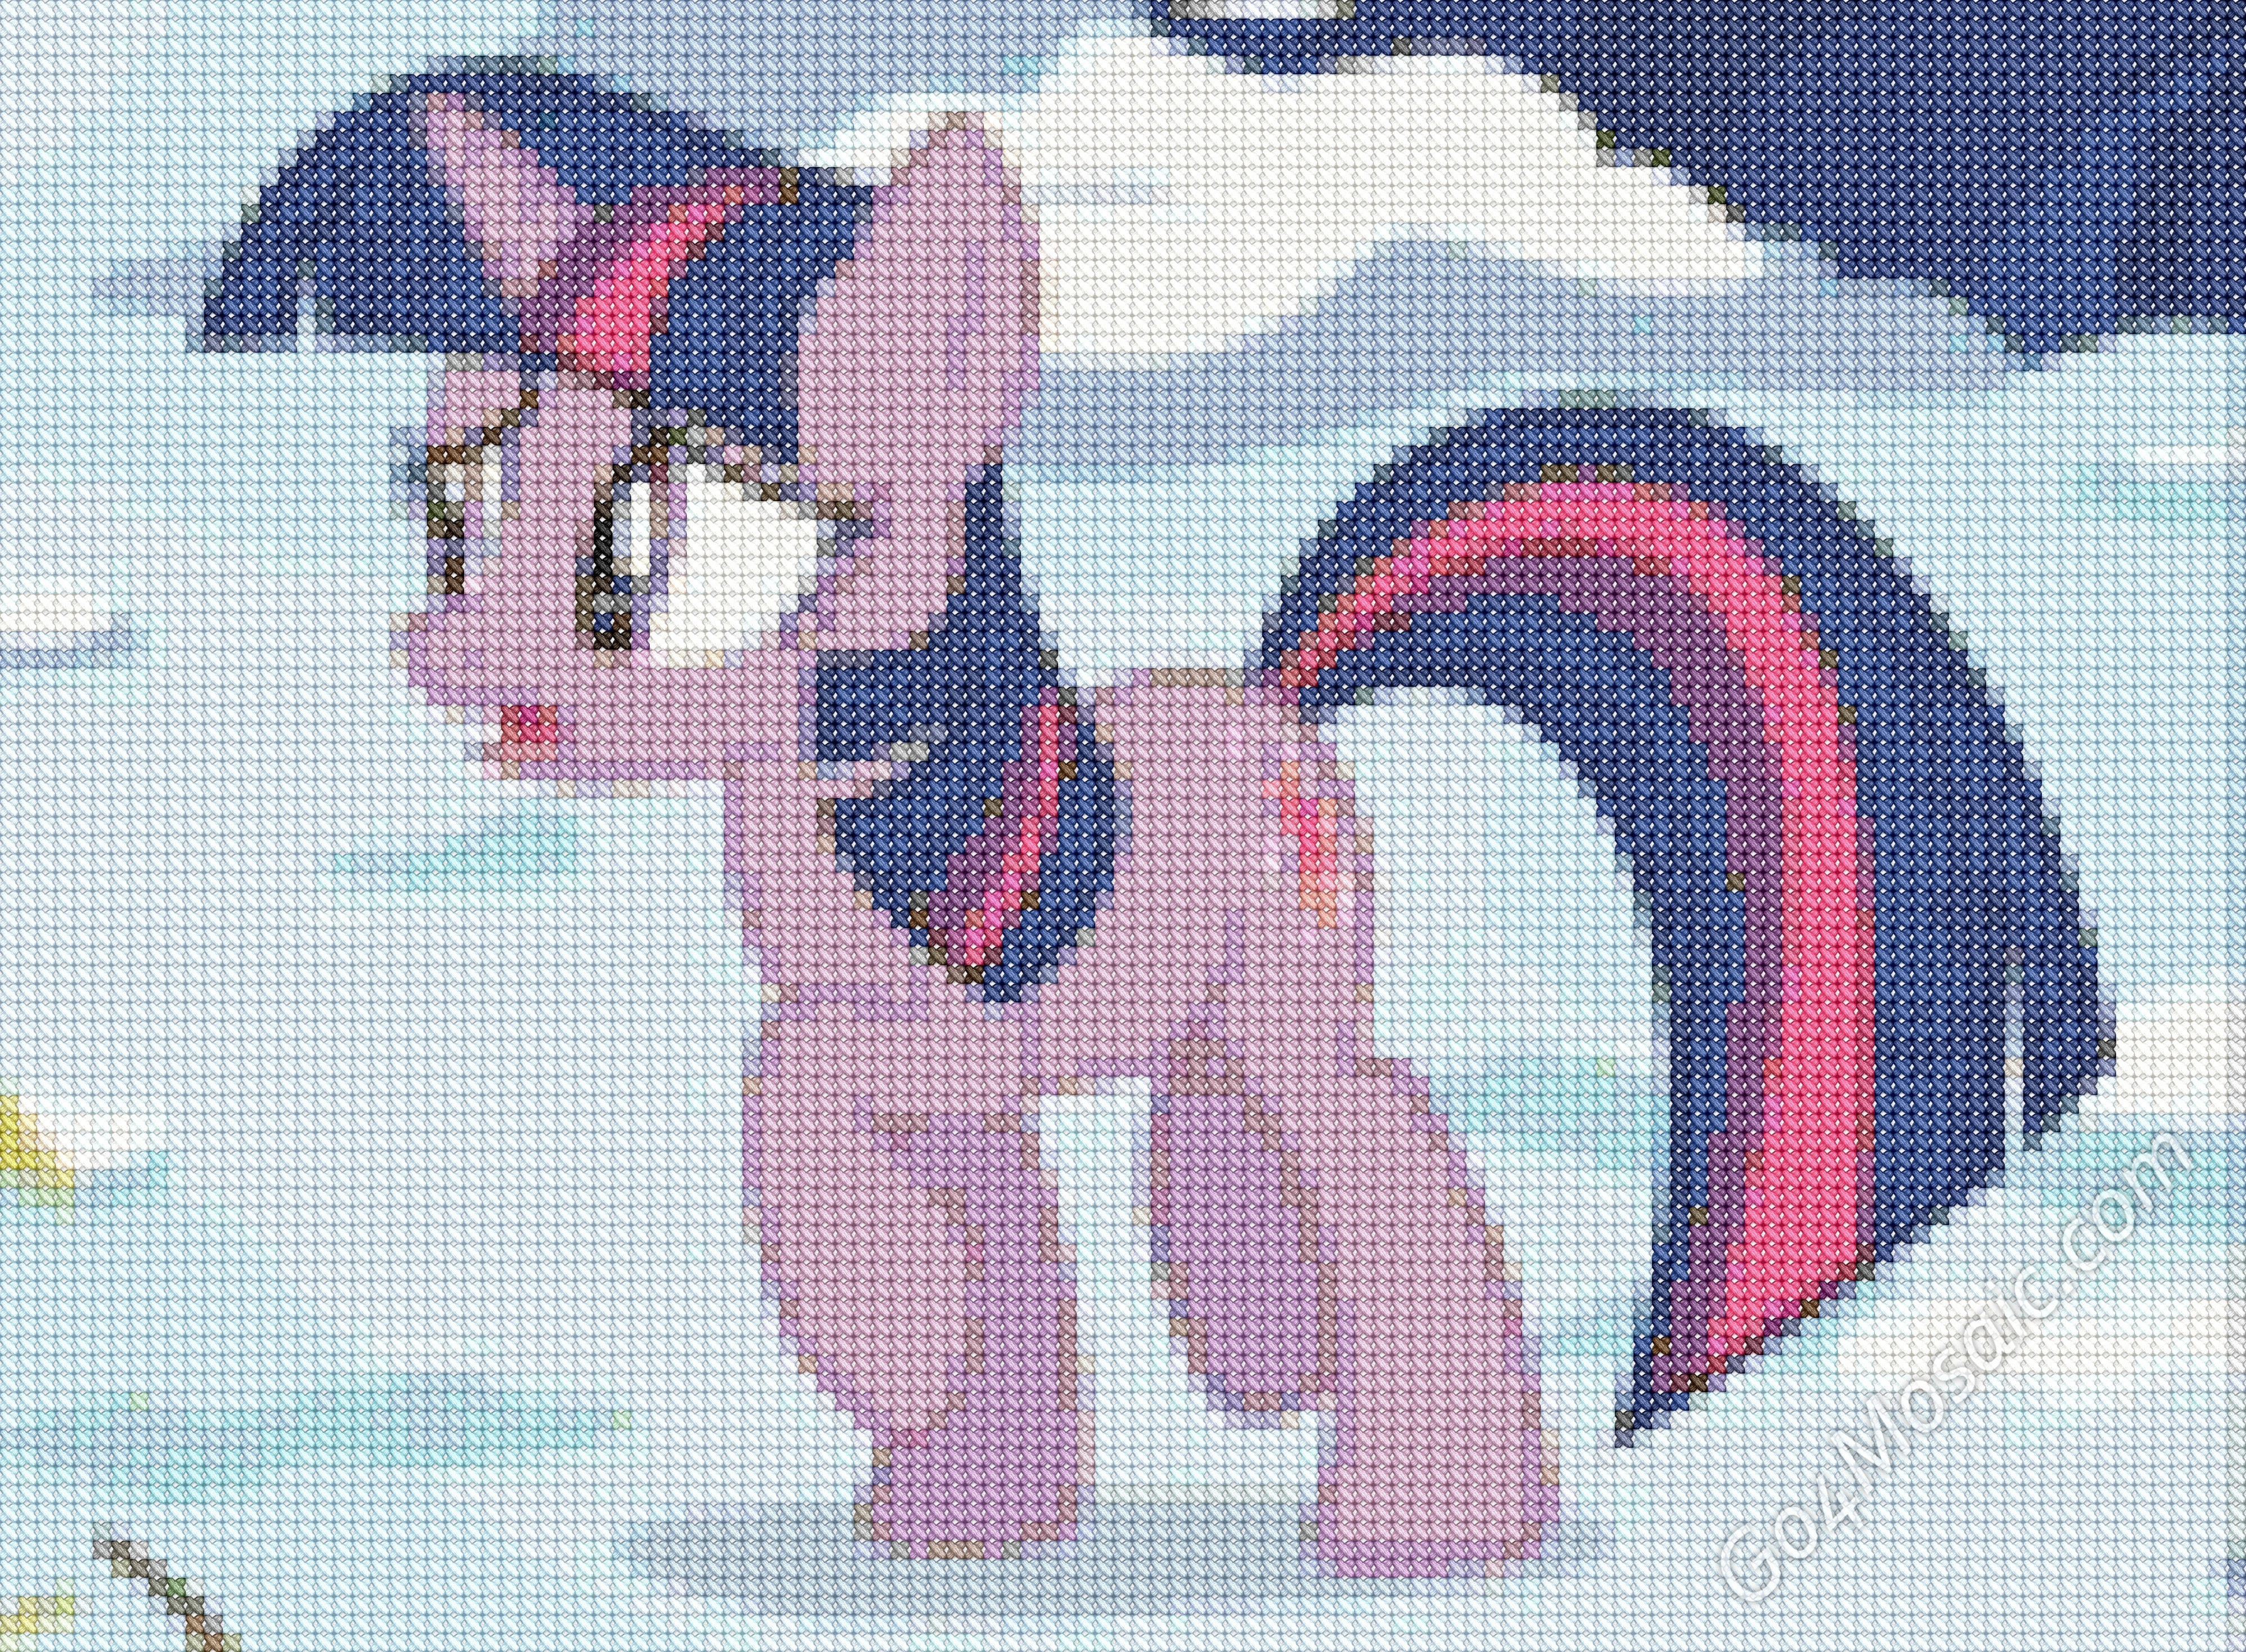 Cross-stitched Twilight Sparkle mosaic